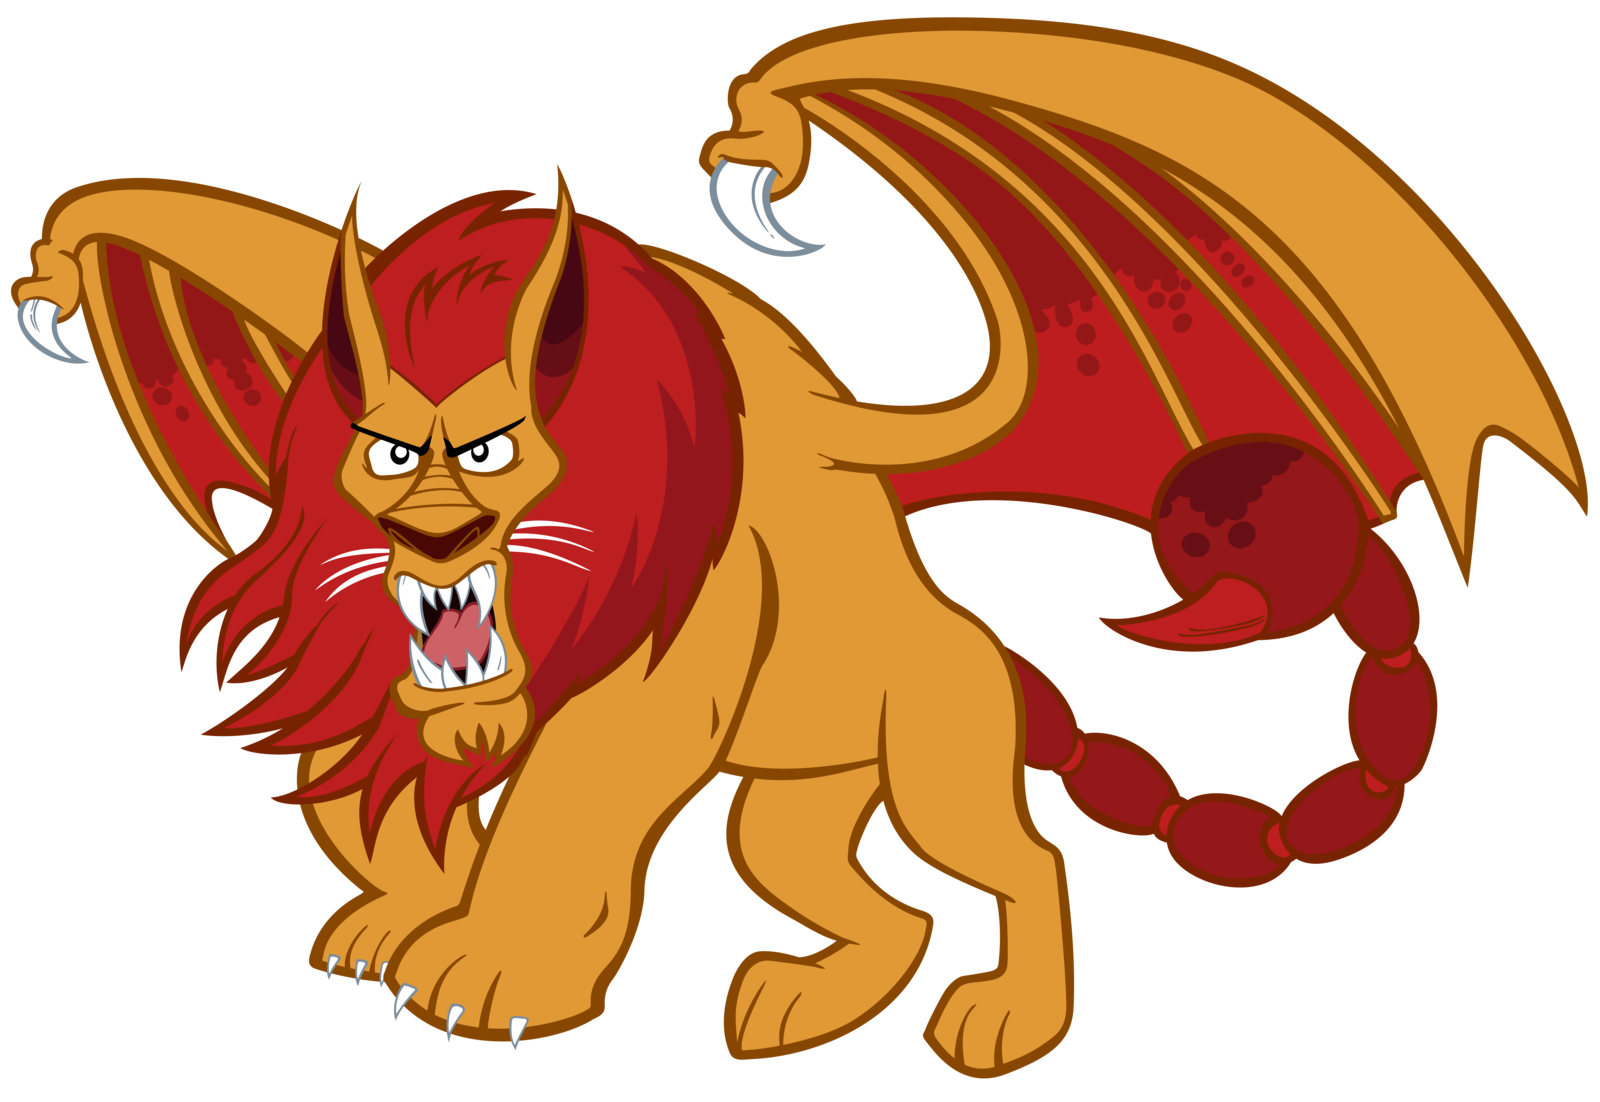 The Manticore by J.